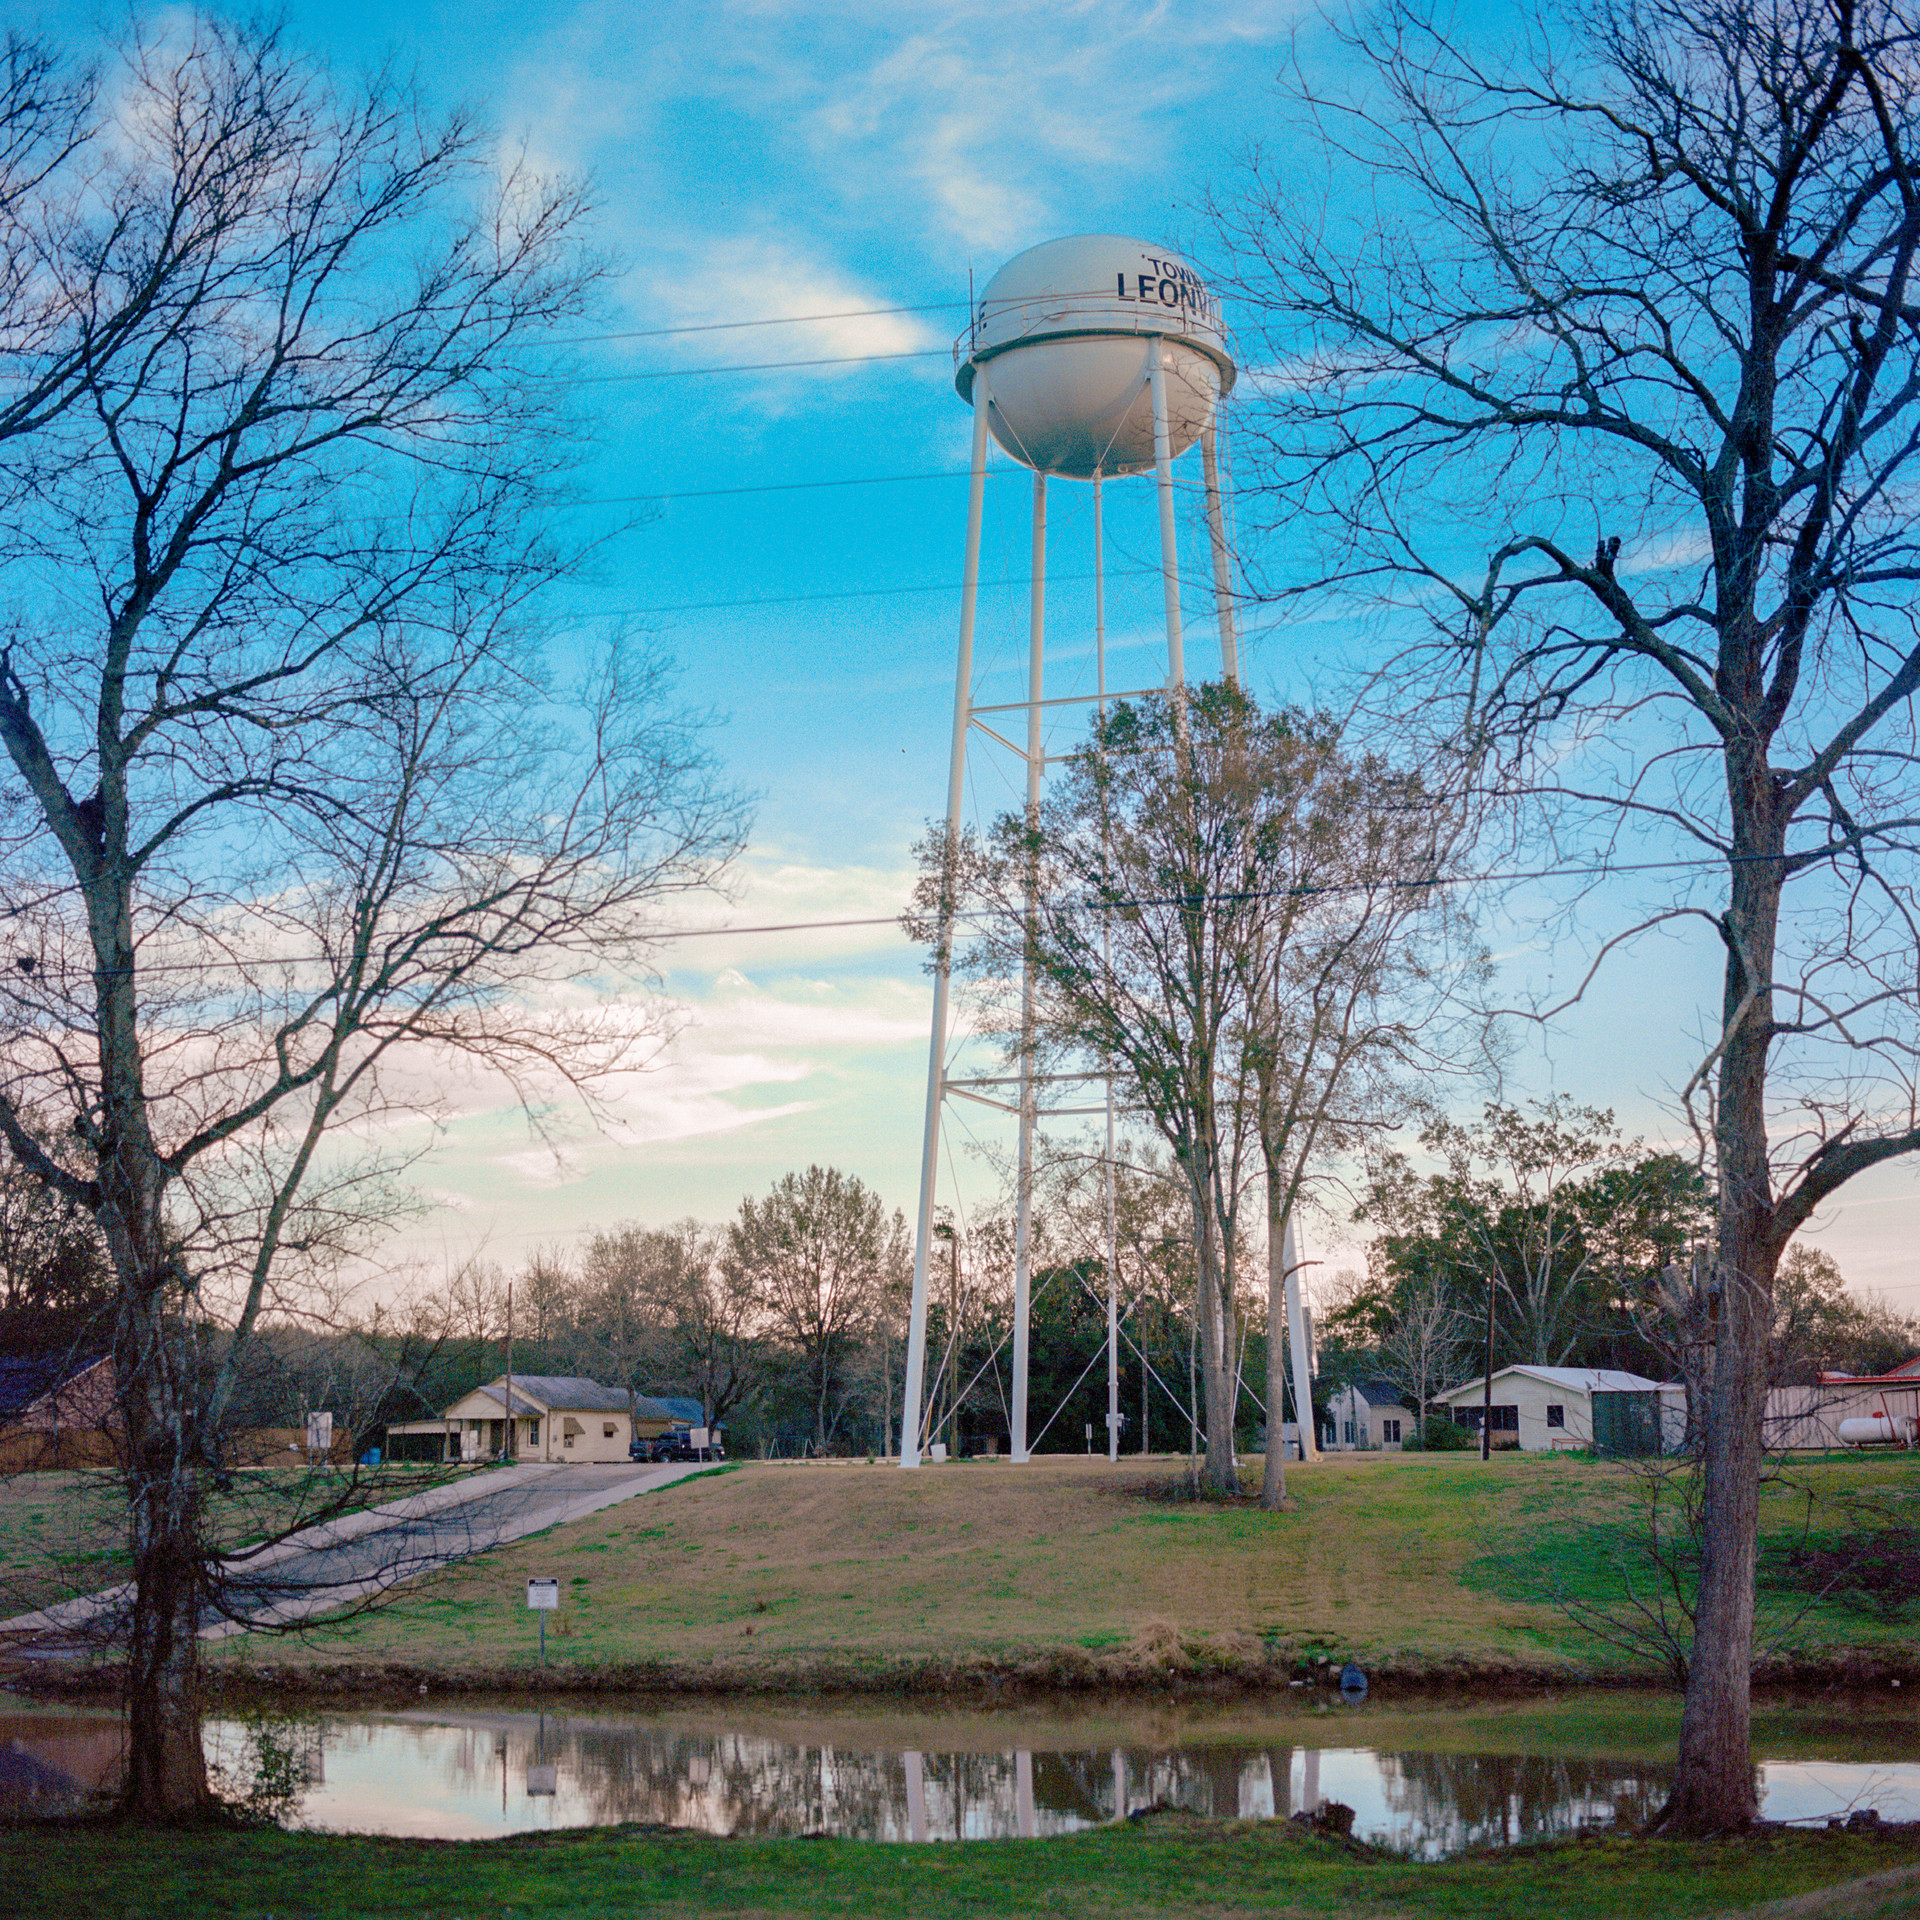 Leonville Water Tower